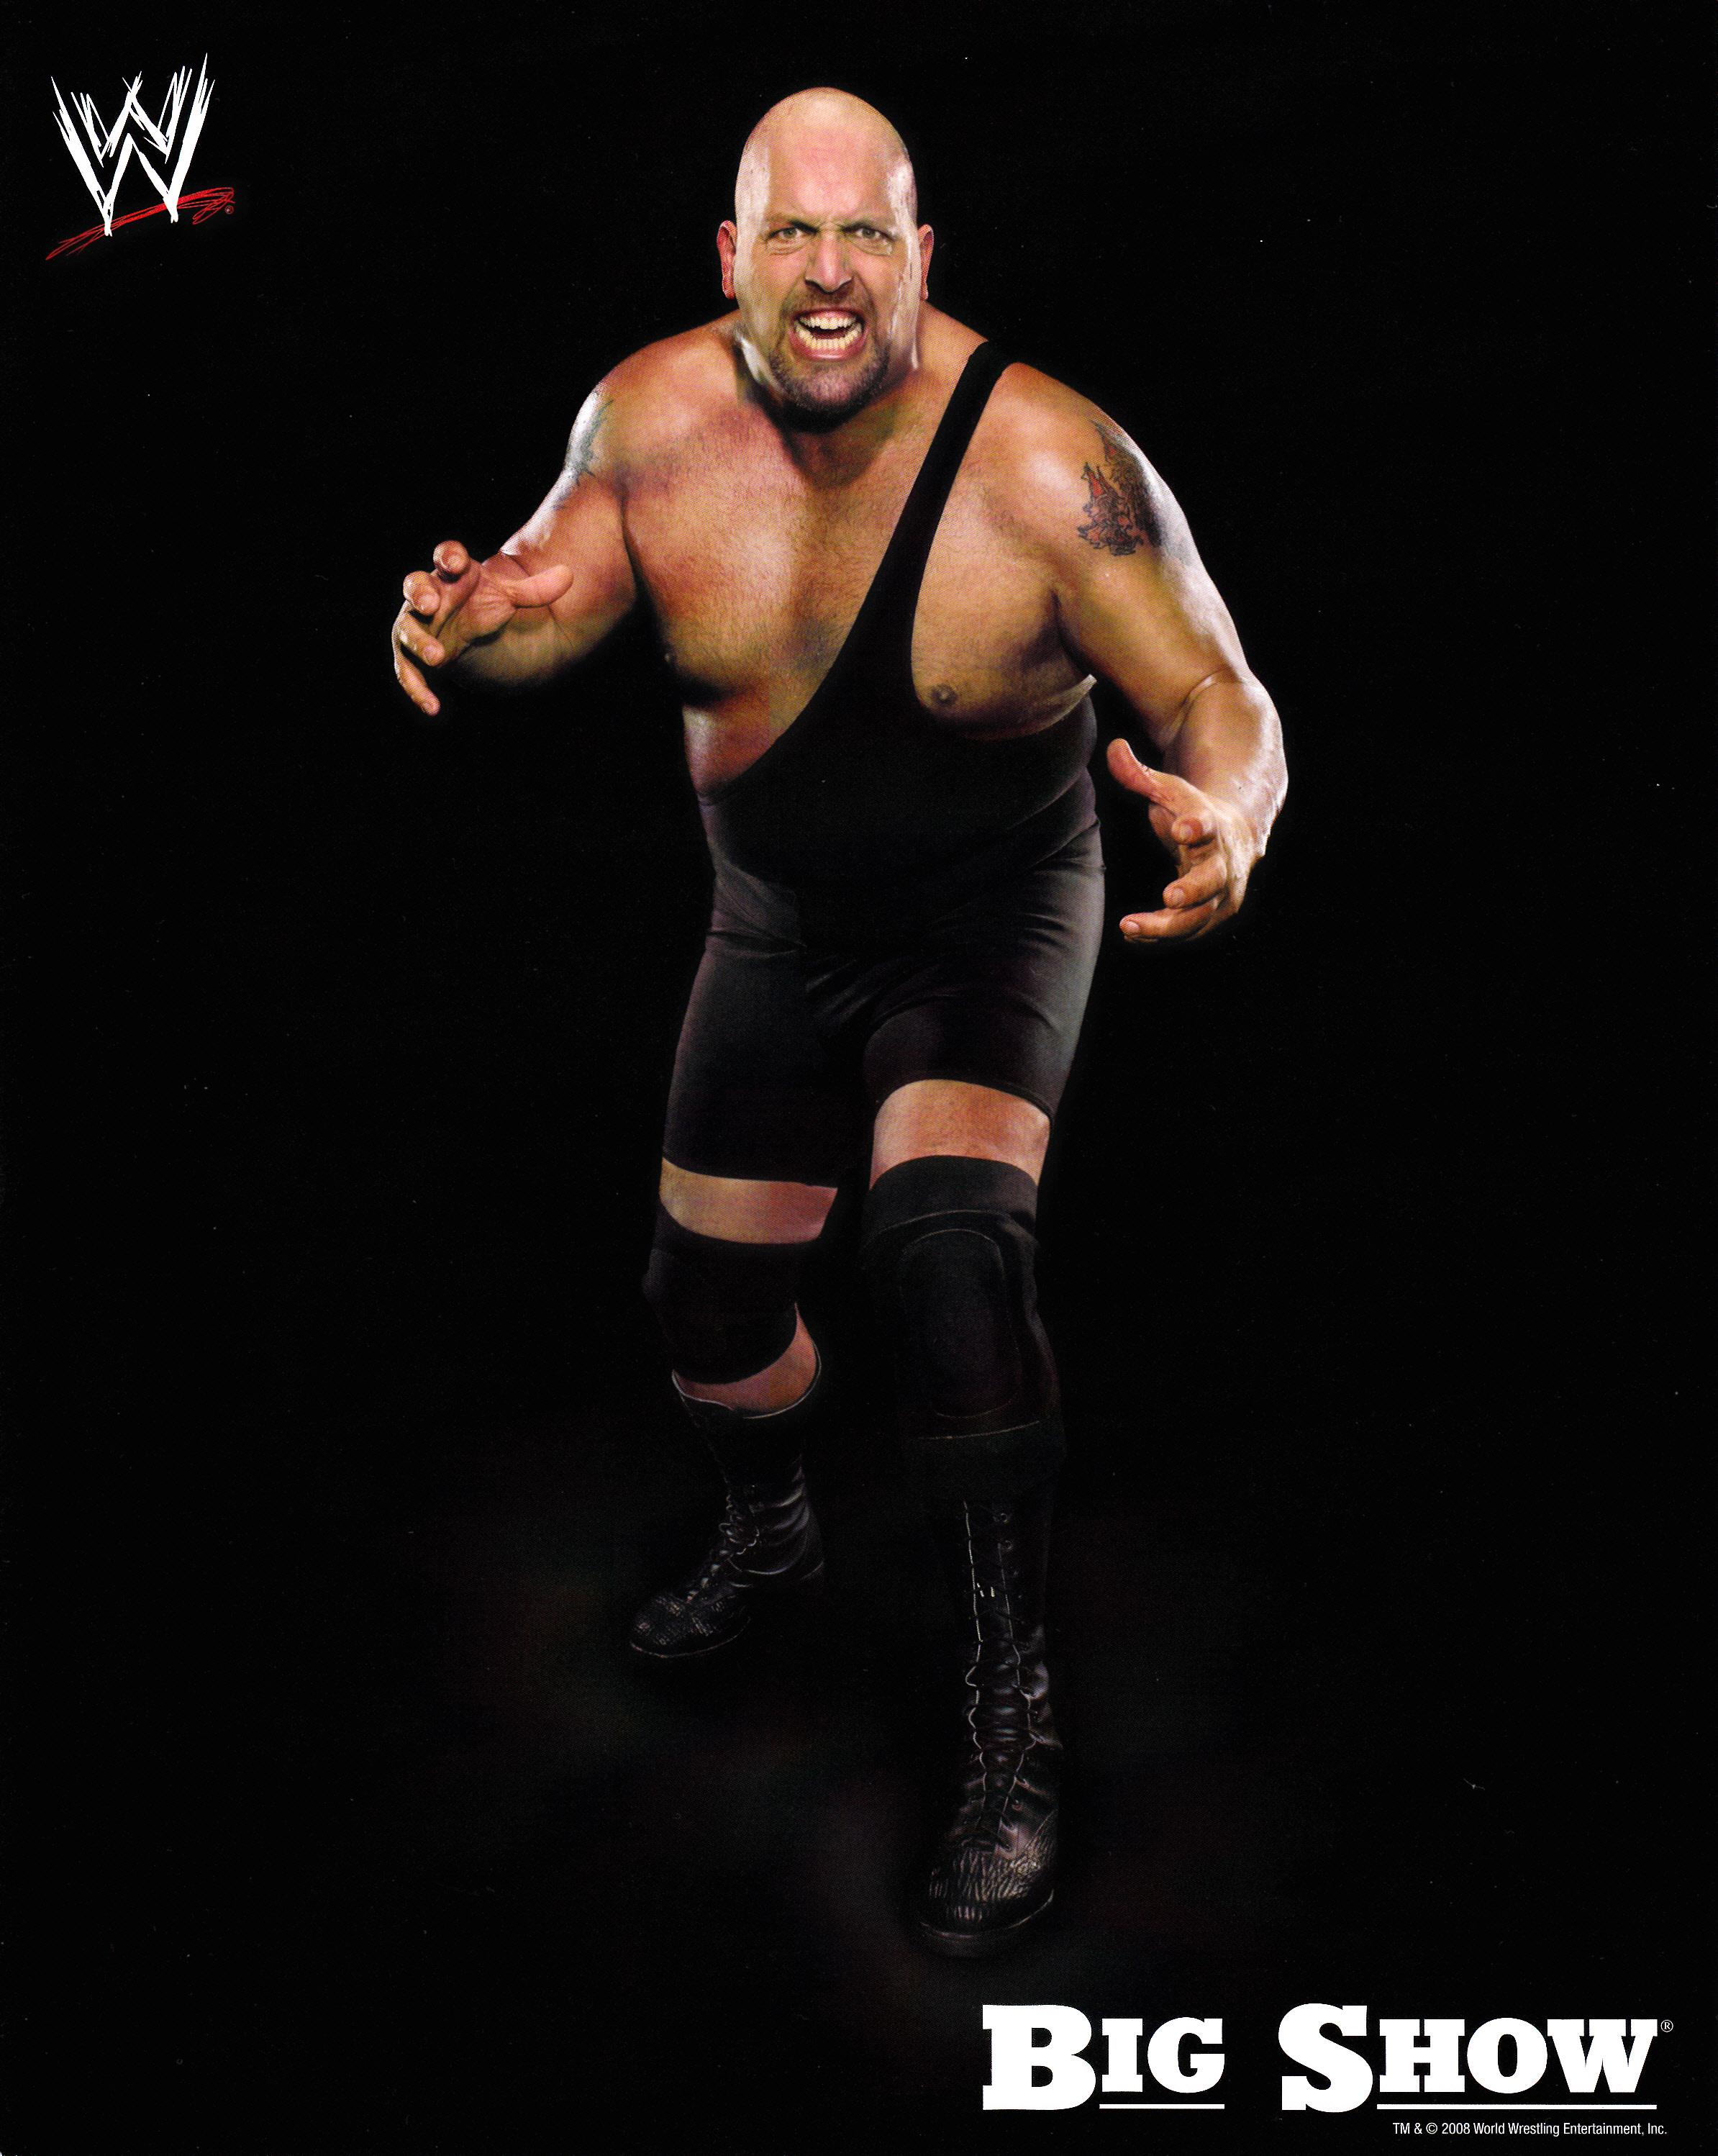 http://photos.imageevent.com/sharpshootercollectibles/newwwepromos/Big%20Show%202008B.jpg